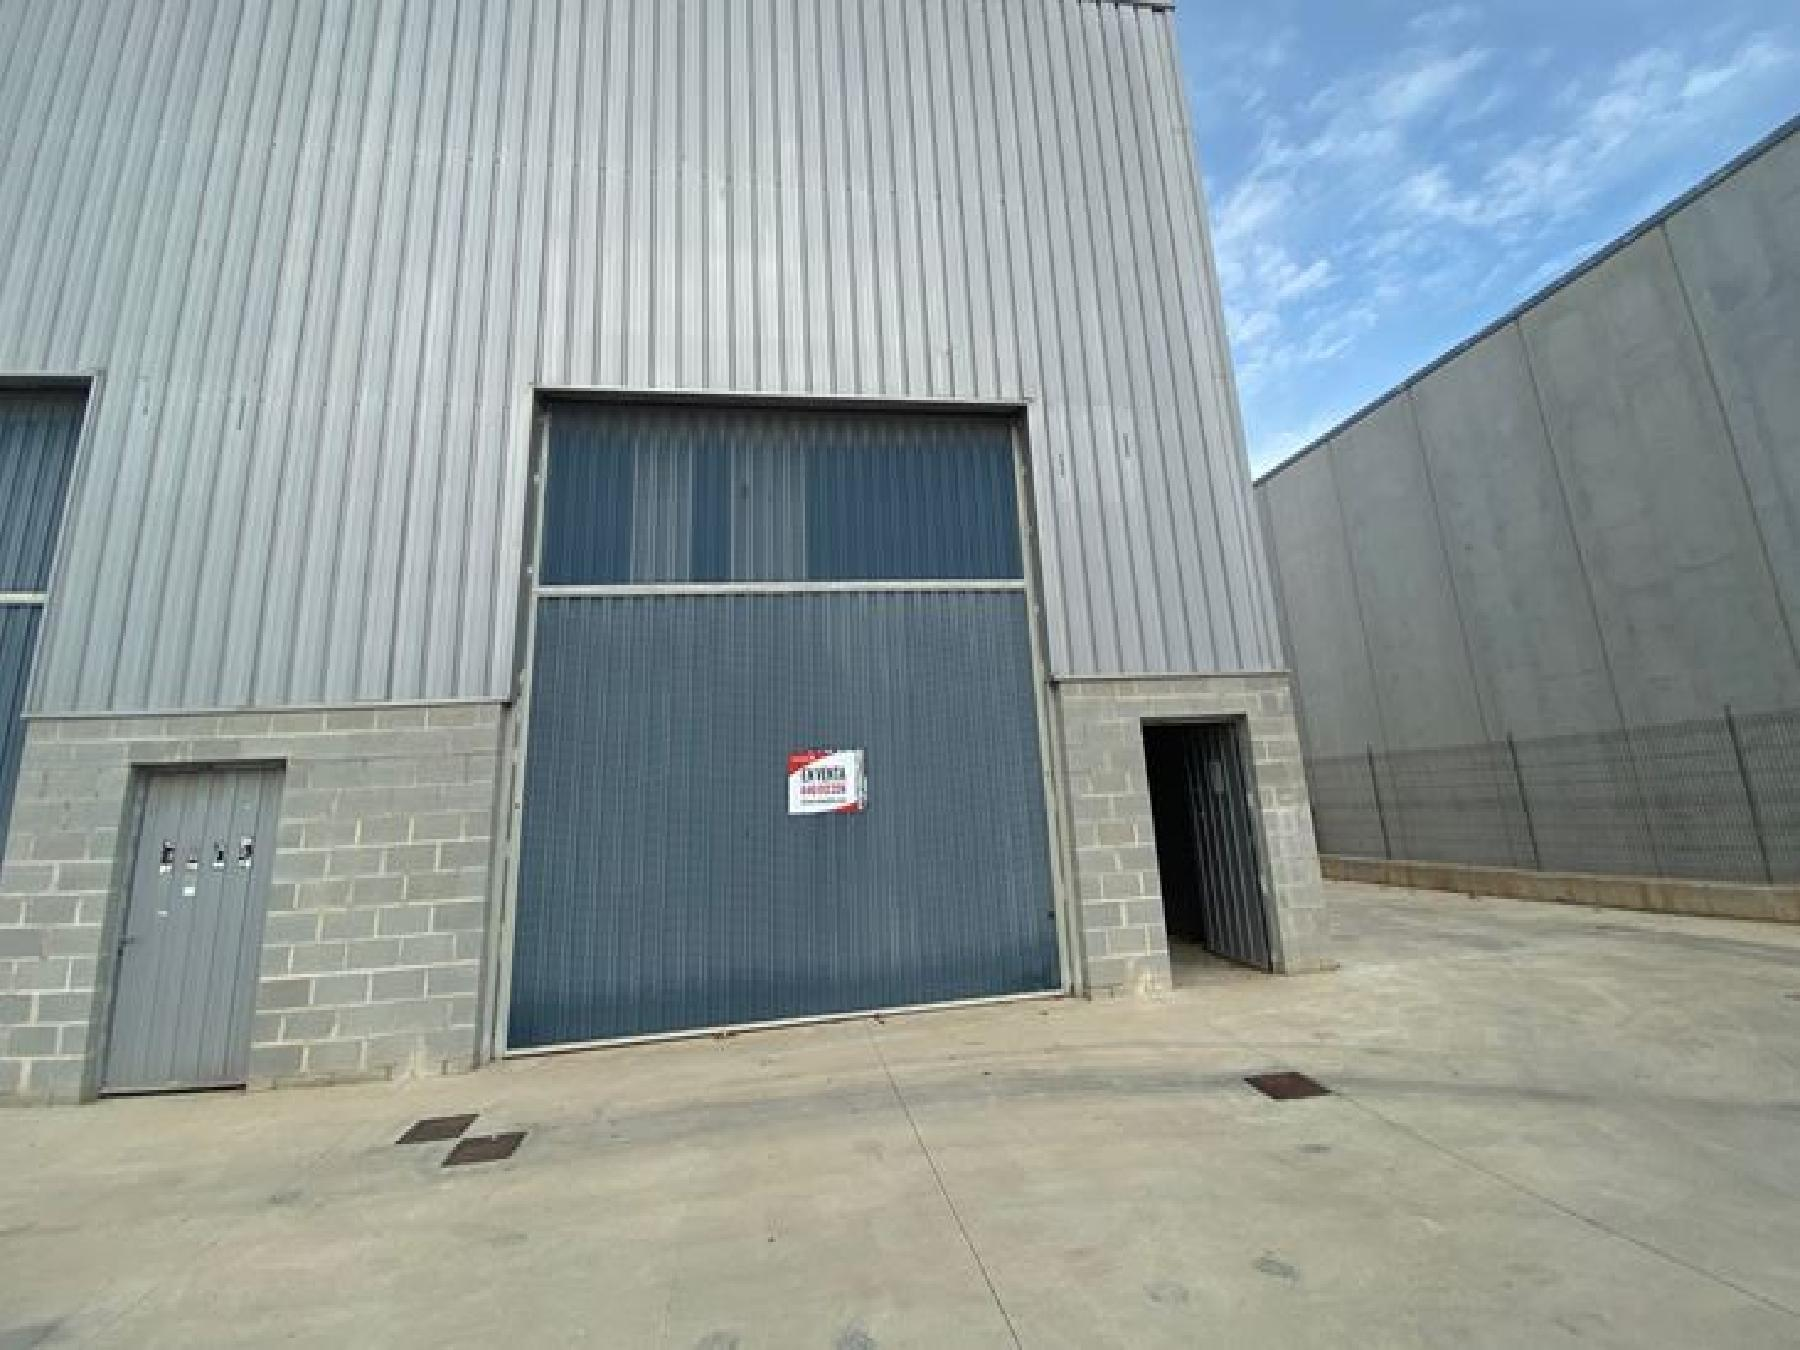 Rent Industrial building in Centrevila